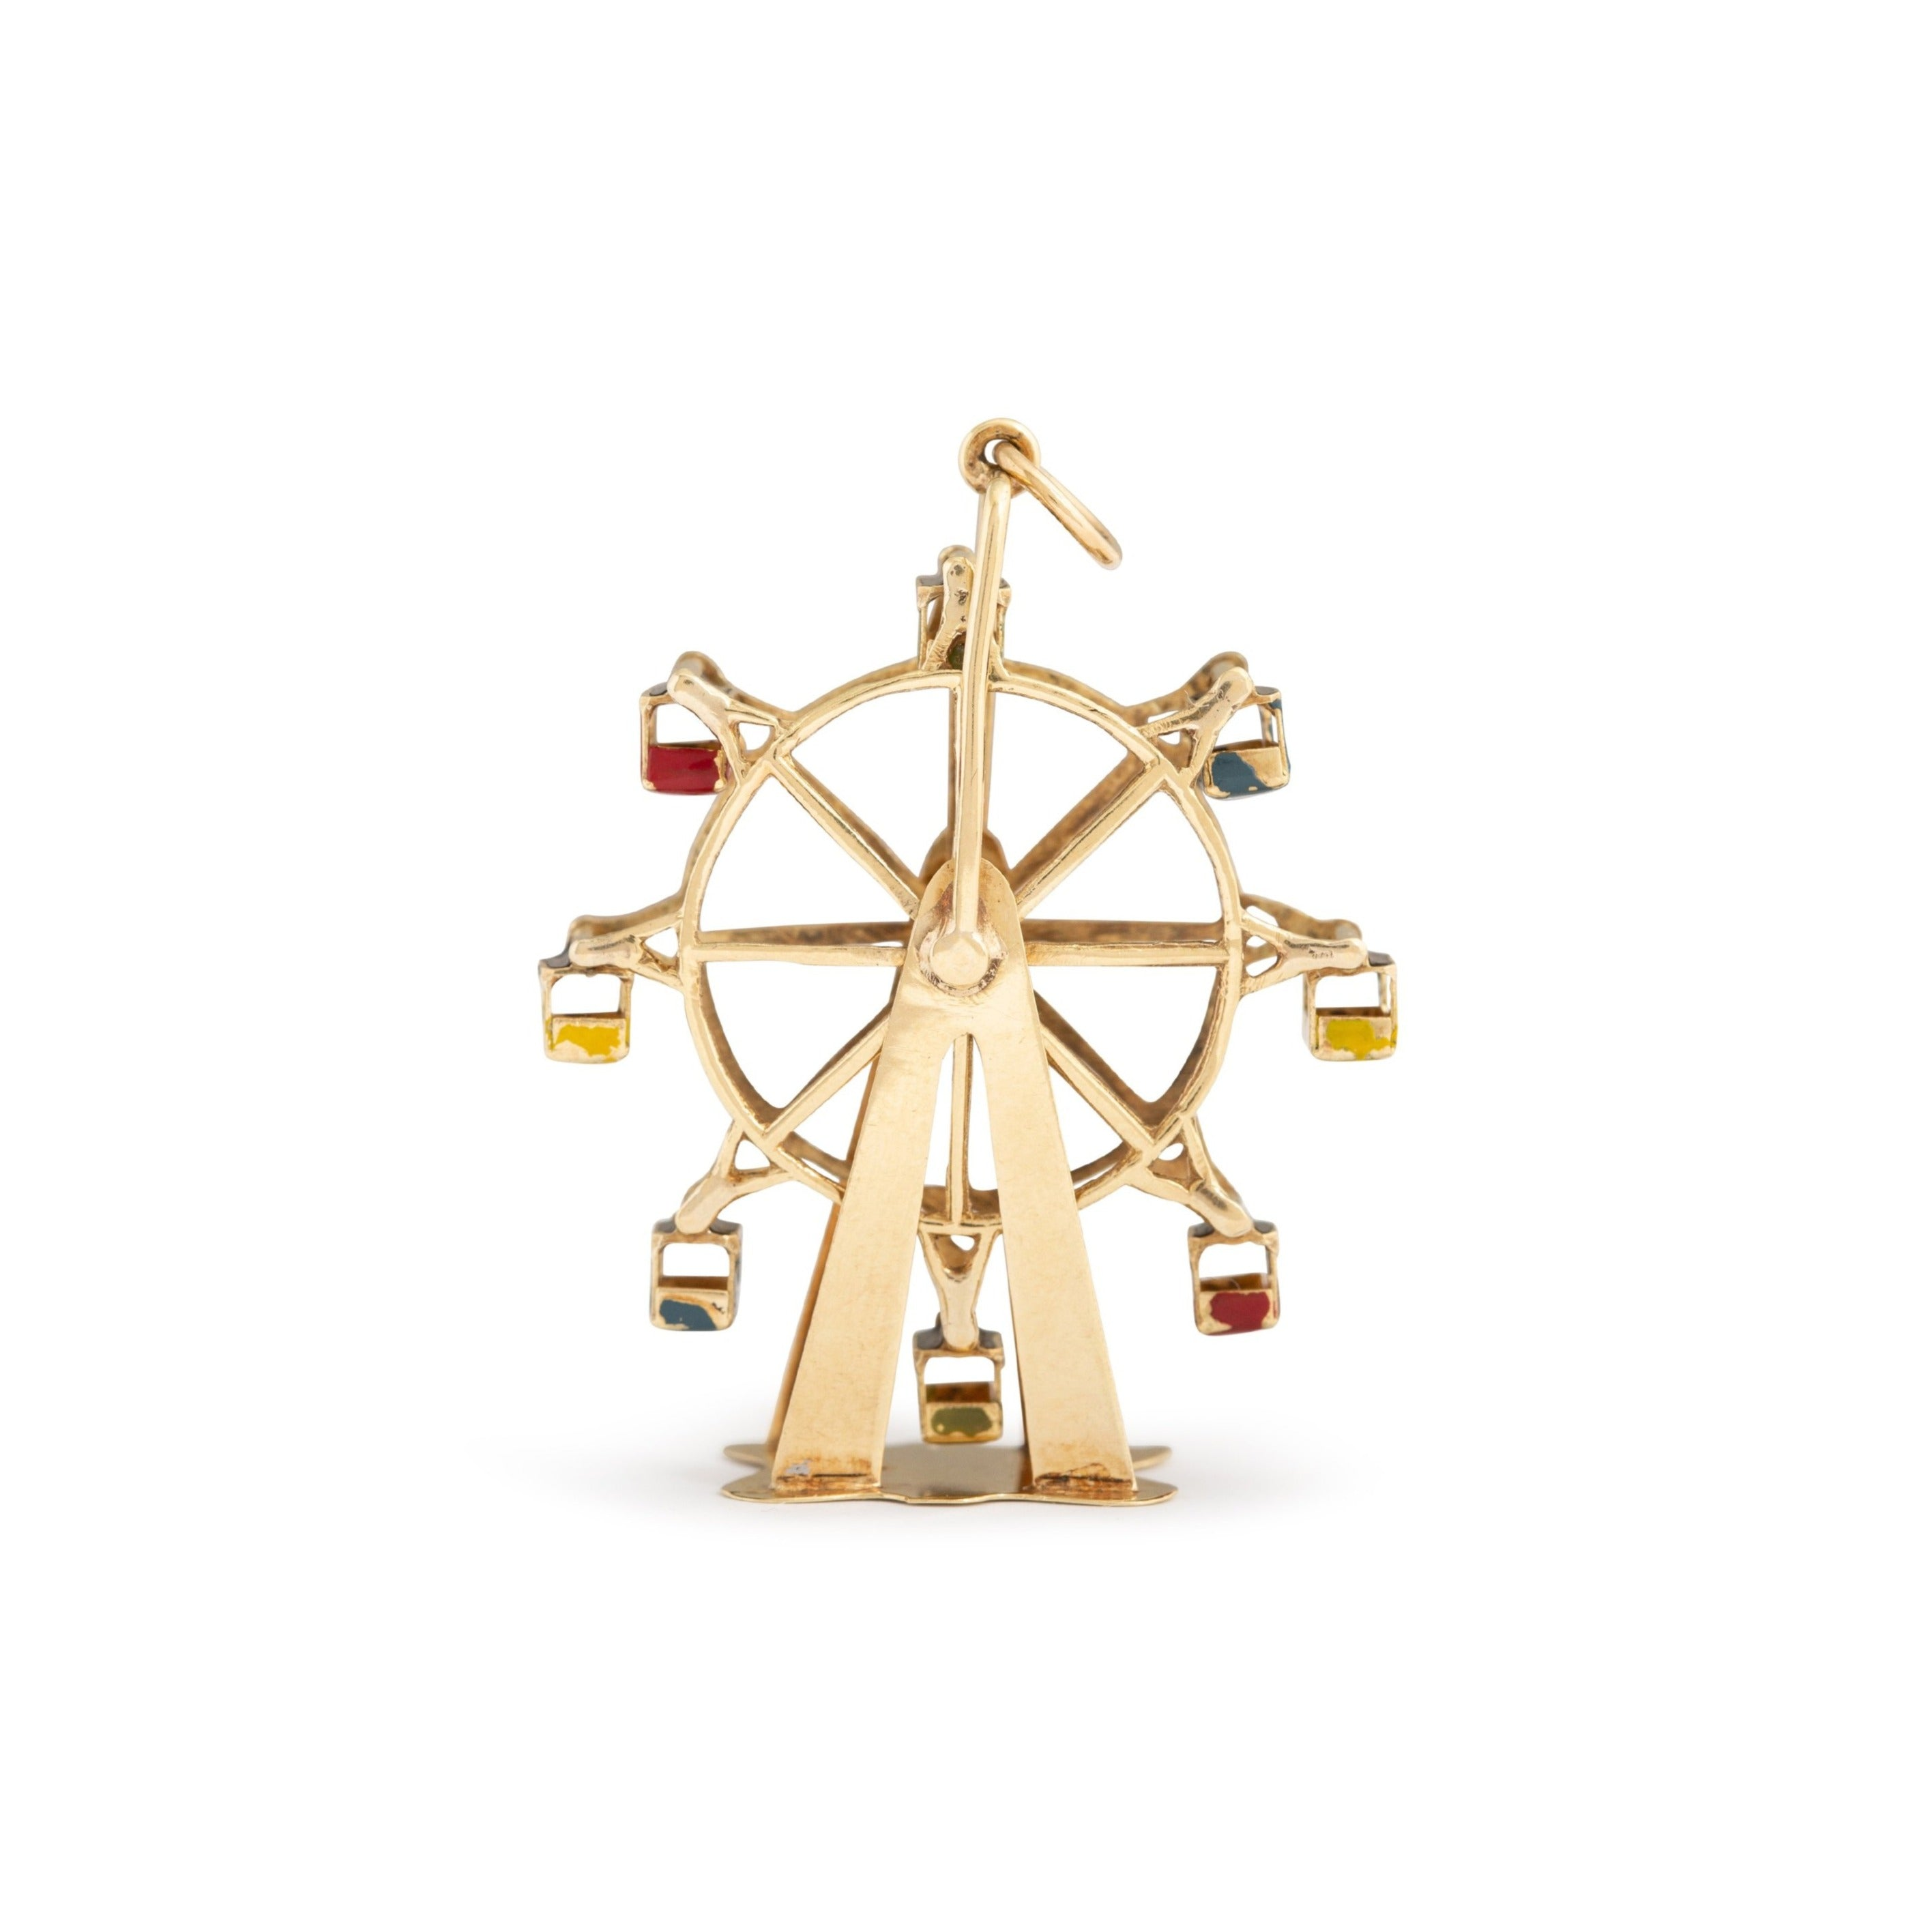 Austrian Large Ferris Wheel 14k Gold and Enamel Charm